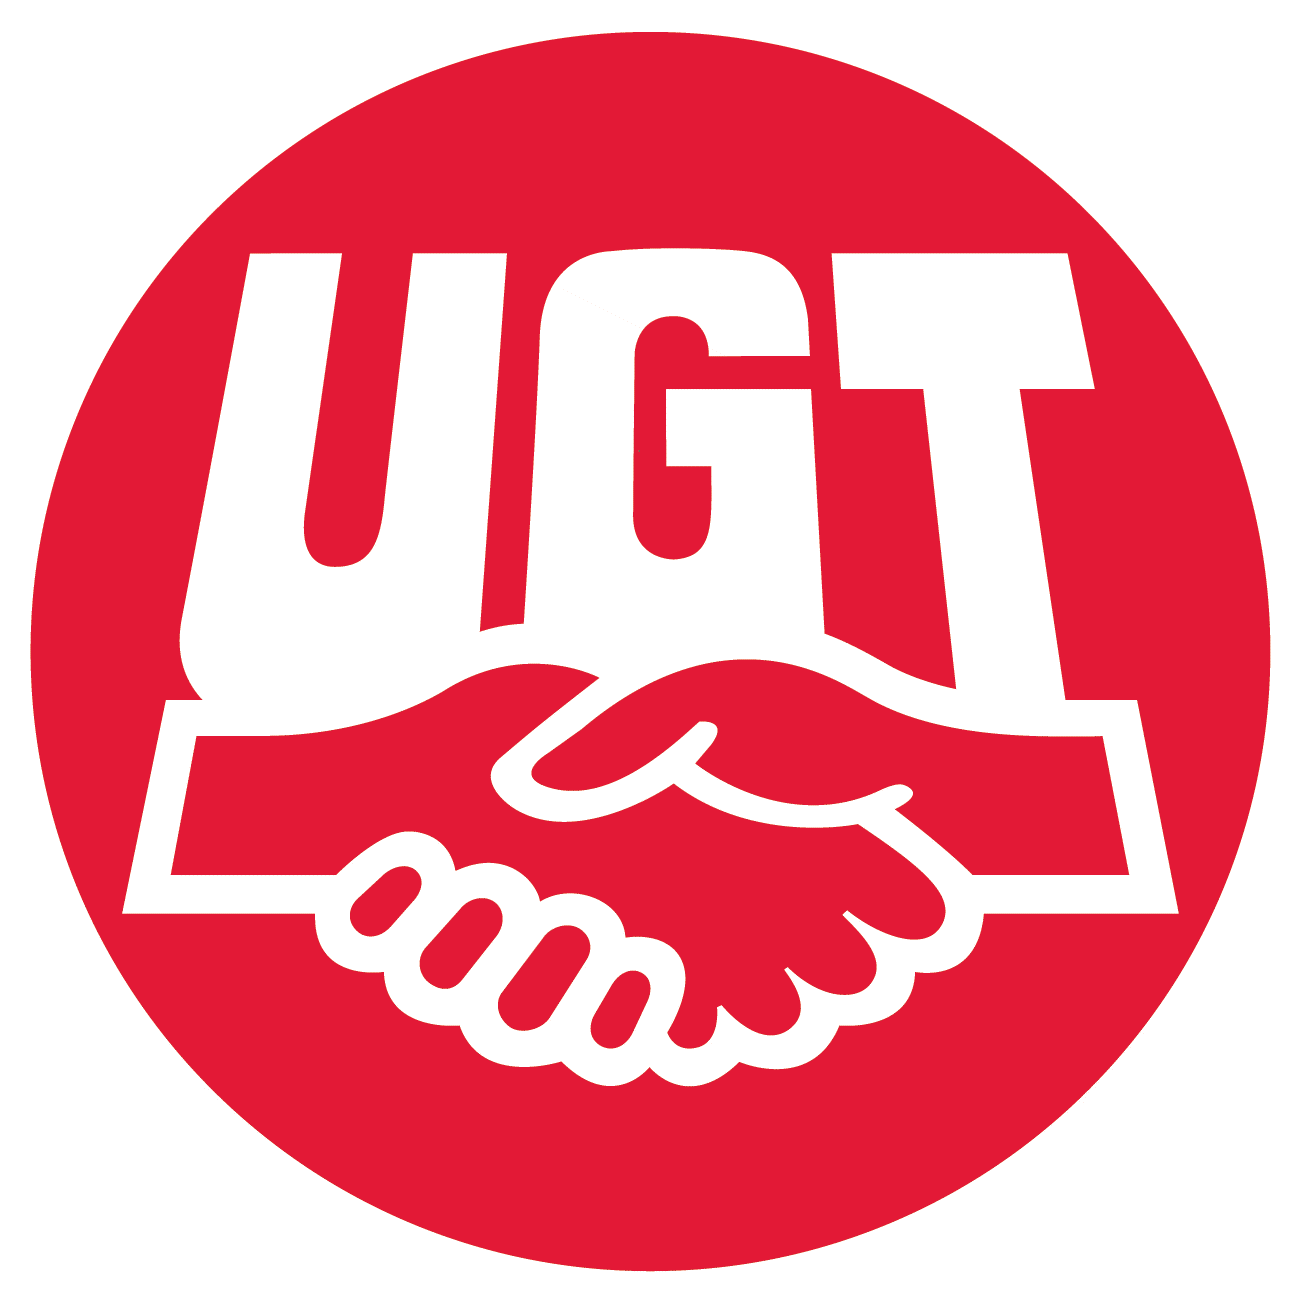 Calendario Laboral 2020 Madrid Ugt.Calendario Laboral Ugt